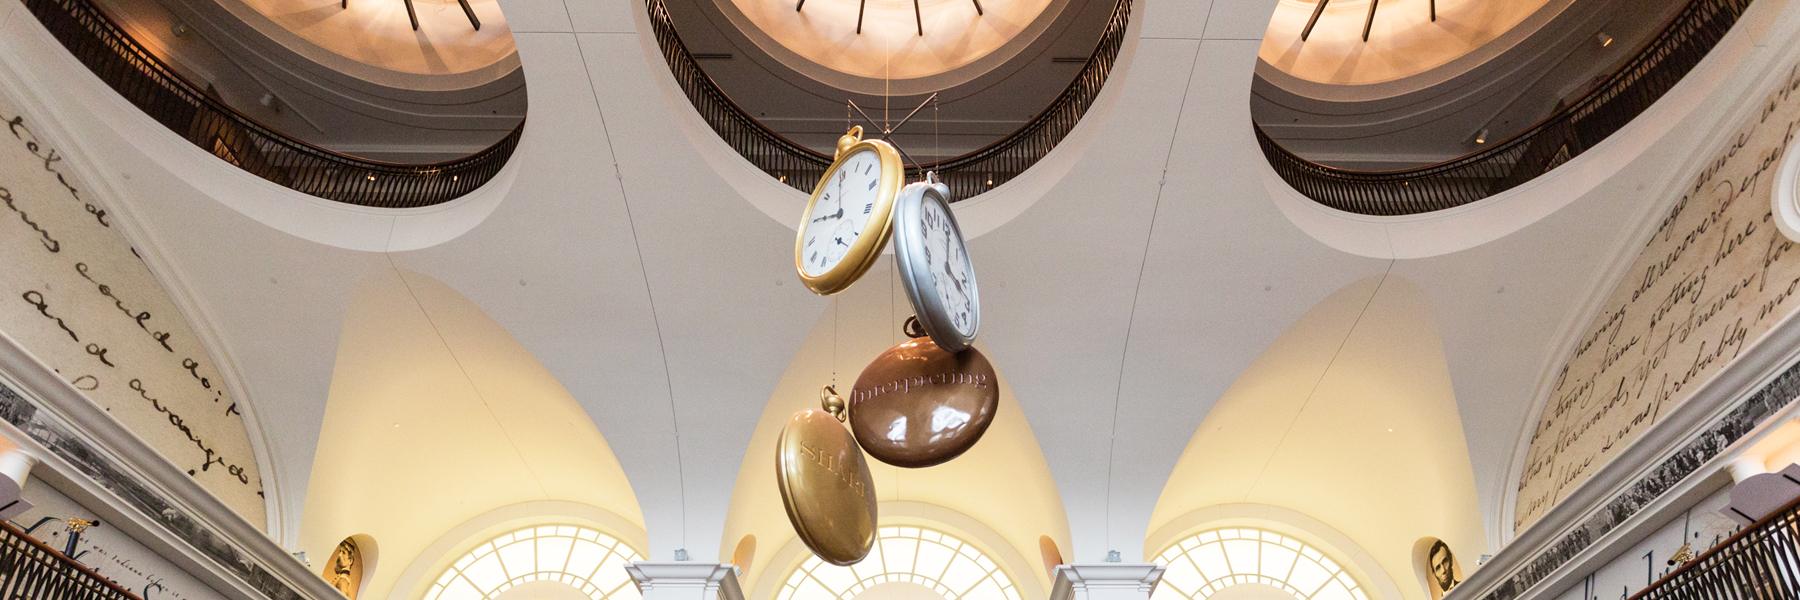 Clocks hanging from a ceiling.